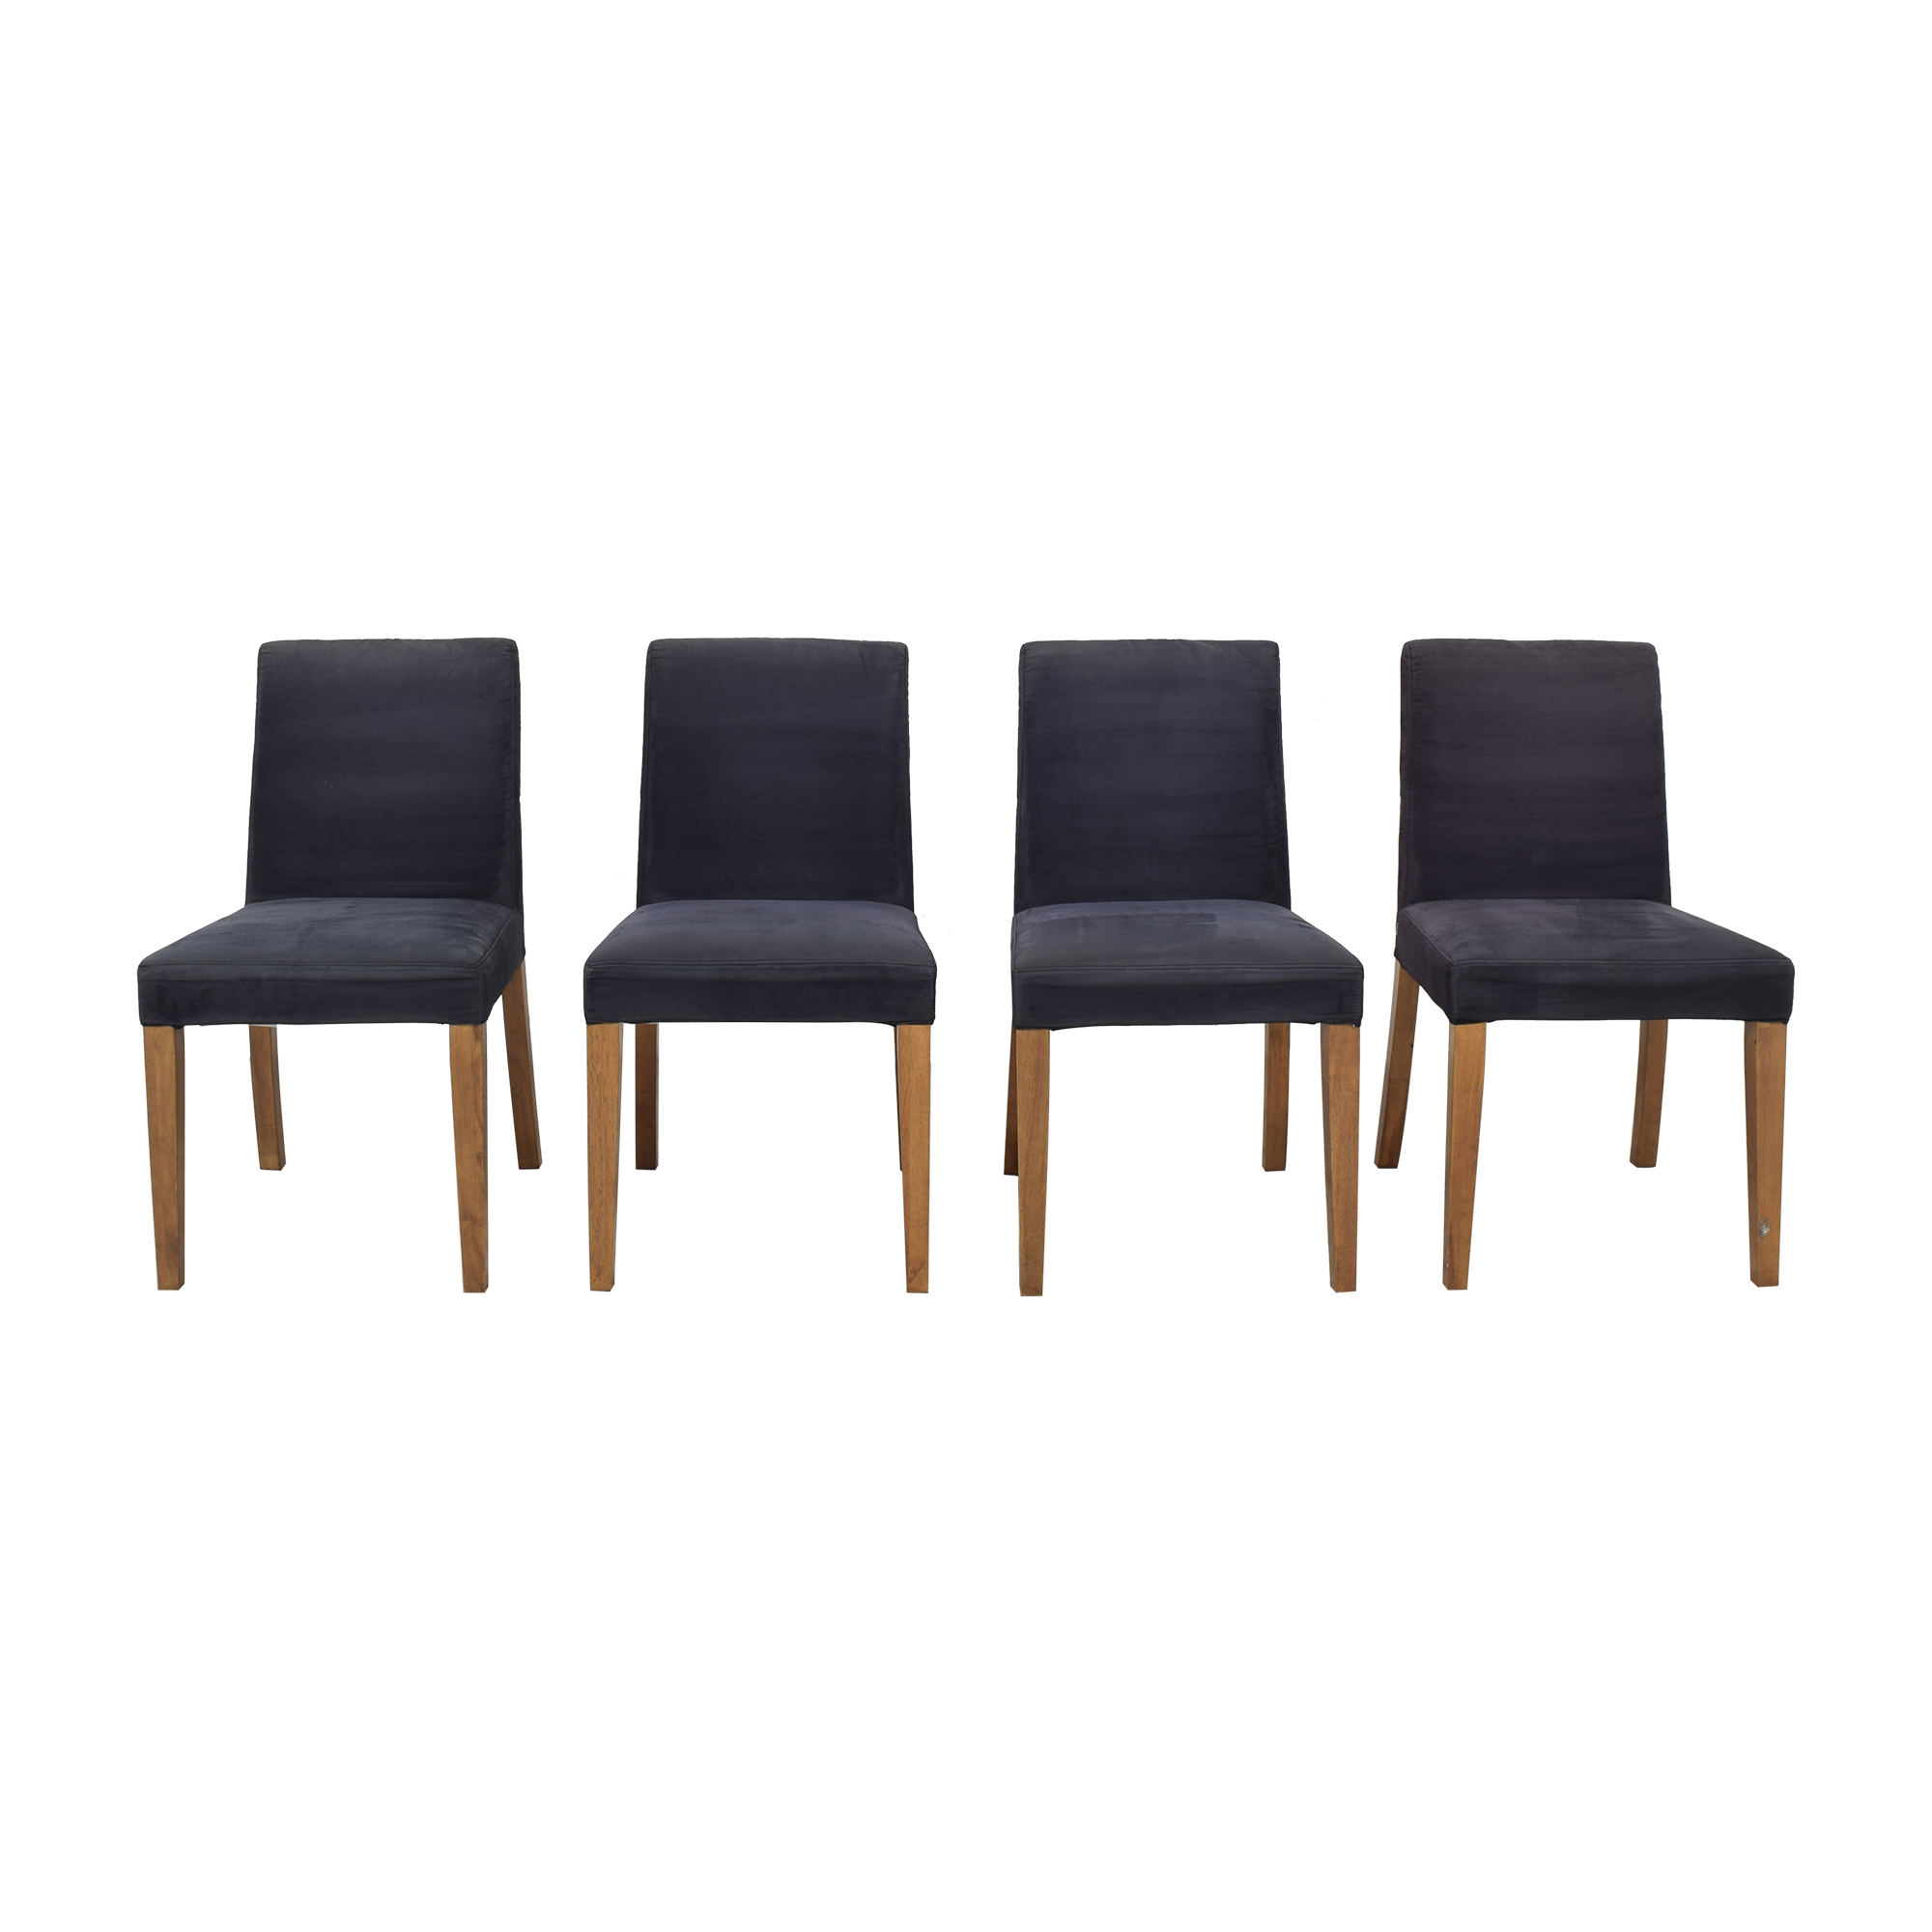 shop BoConcept BoConcept Cantono Upholstered Chairs online